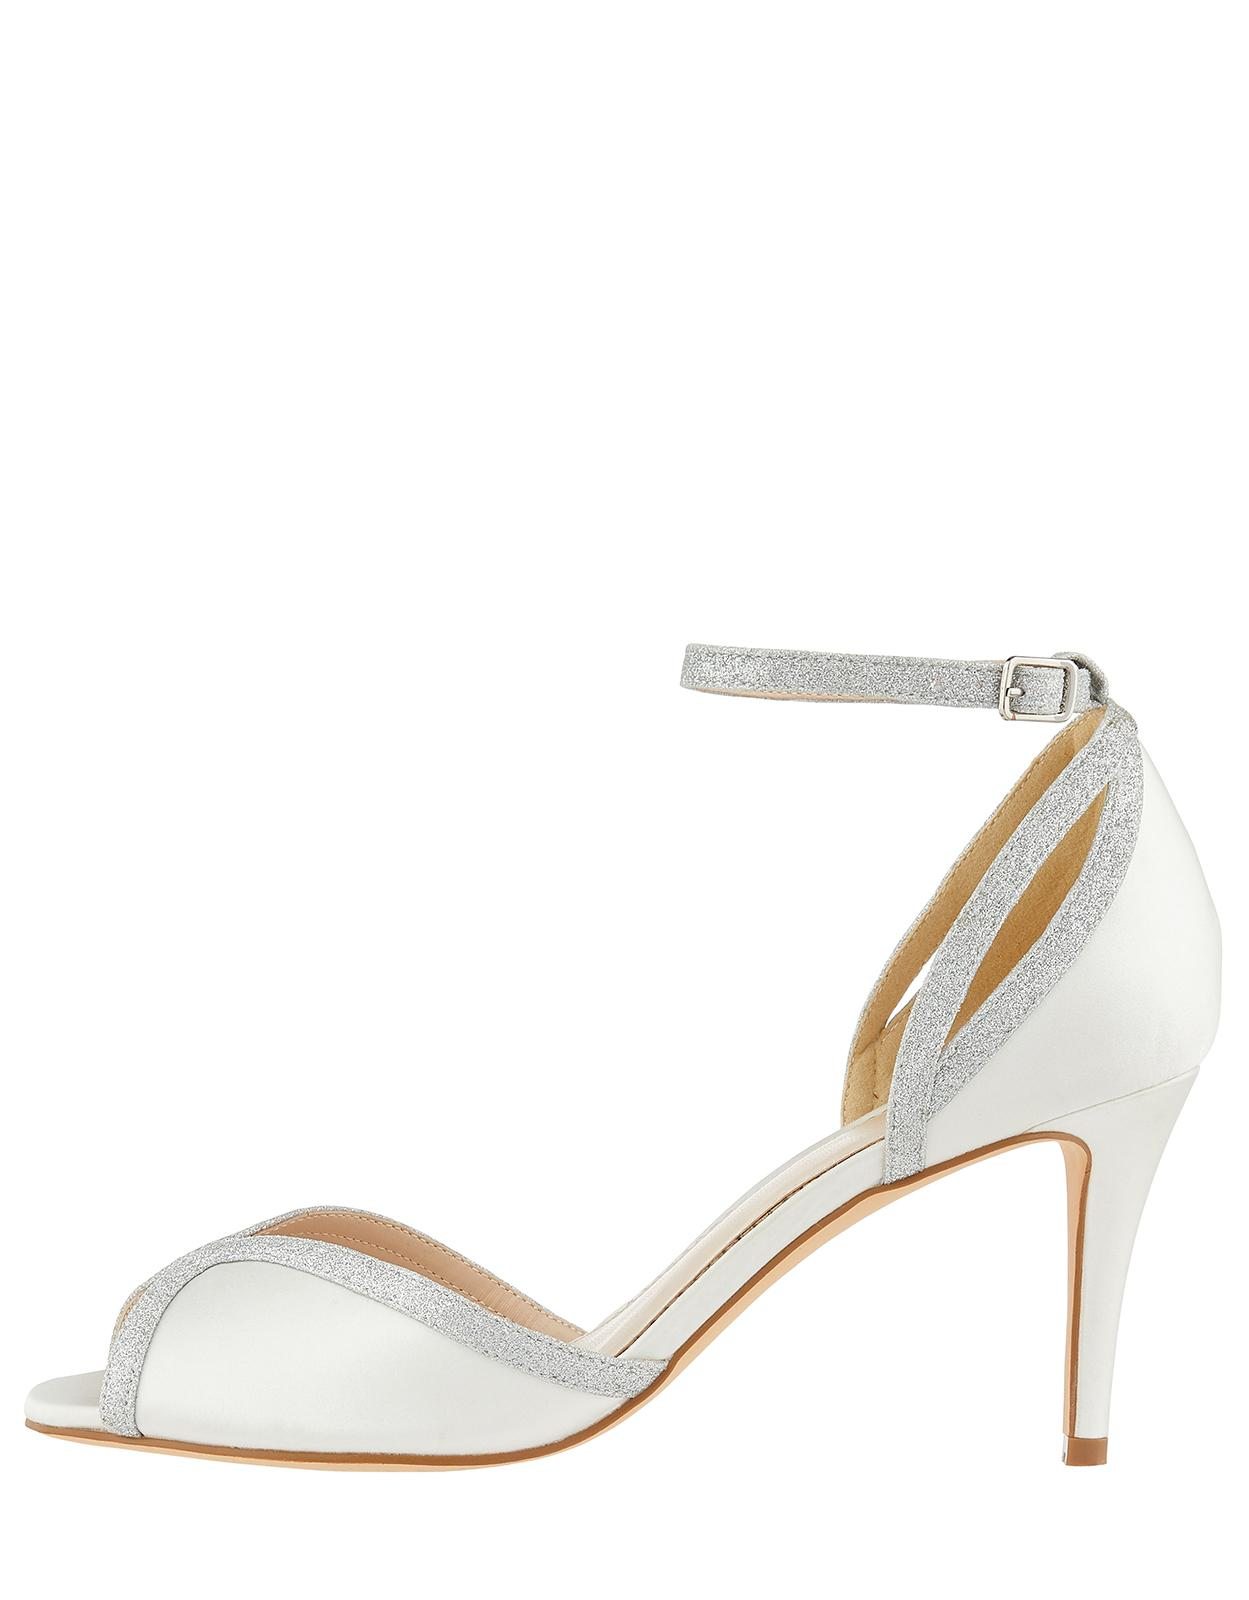 e9ed4df4002 Monsoon Gizela Glitter Two Part Peep Toe Bridal Shoes in White - Lyst